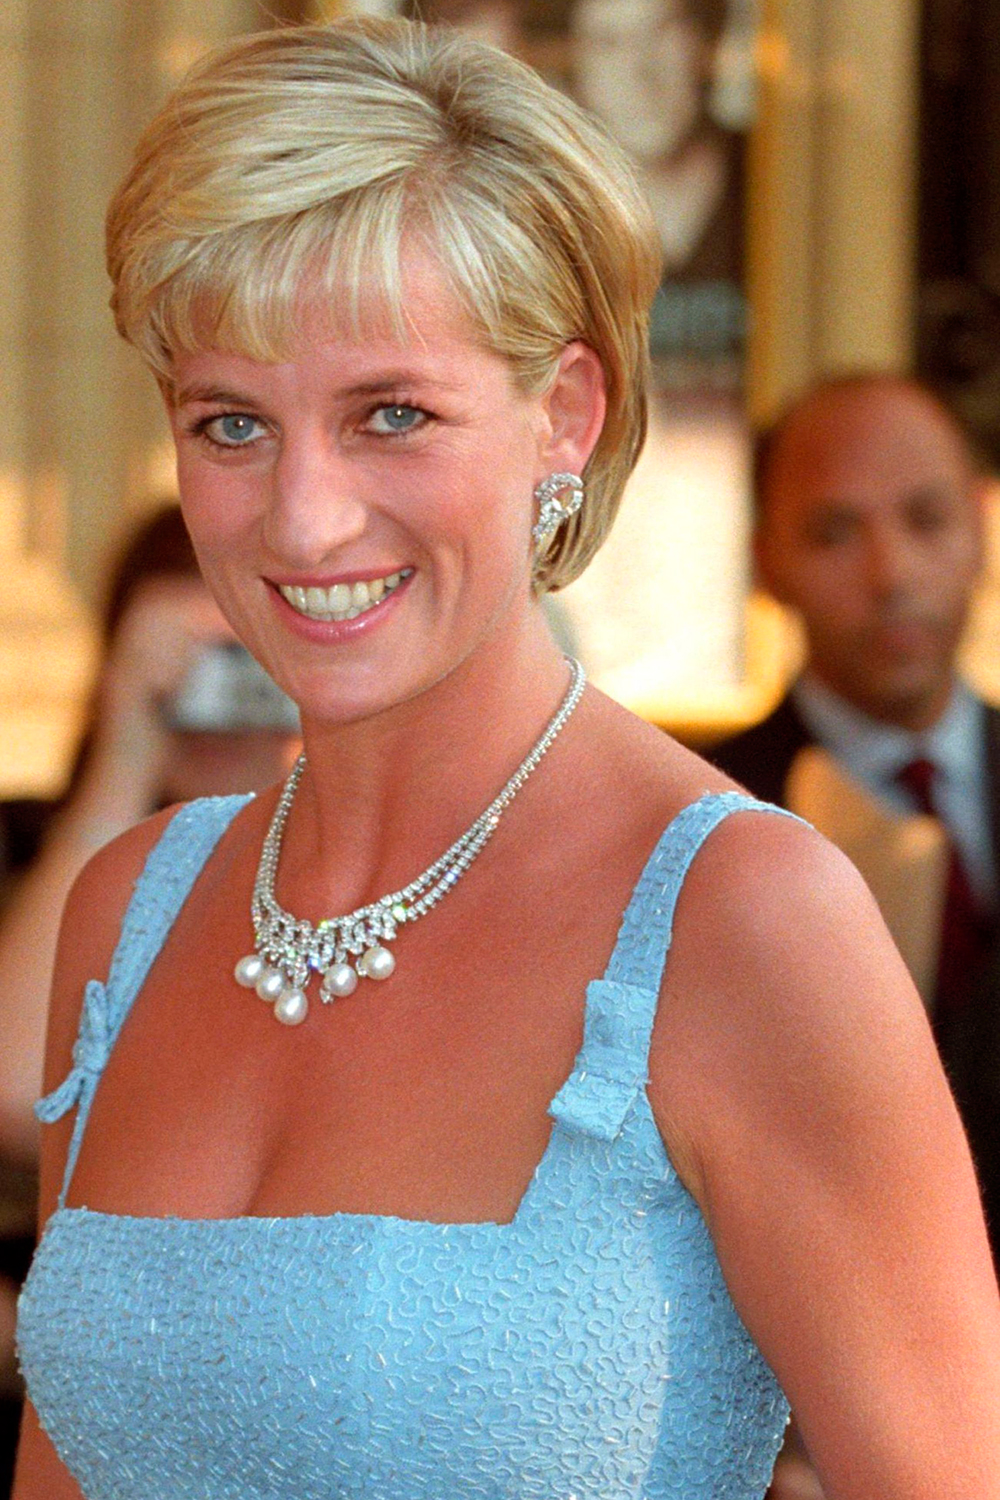 Princess Diana S Iconic Diamond And Pearl Necklace Is Up